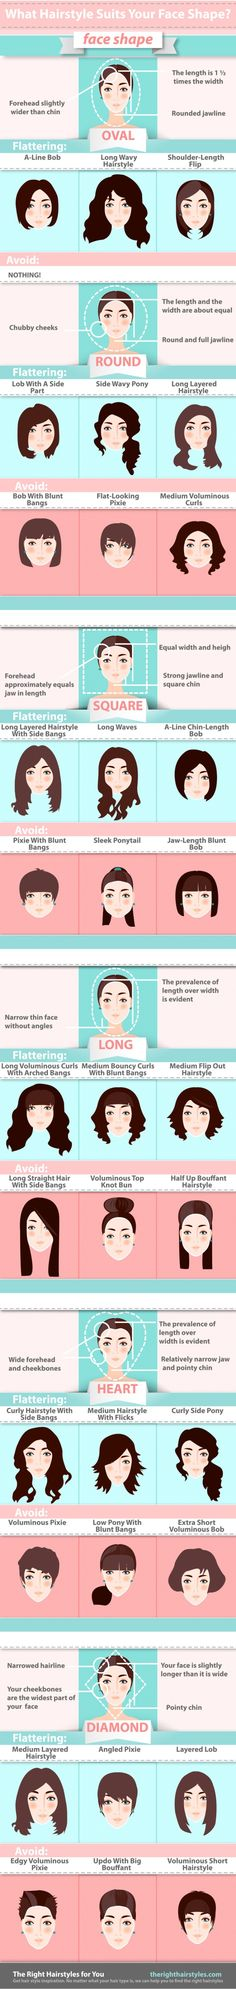 What Hairstyle Suits Your Face Shape